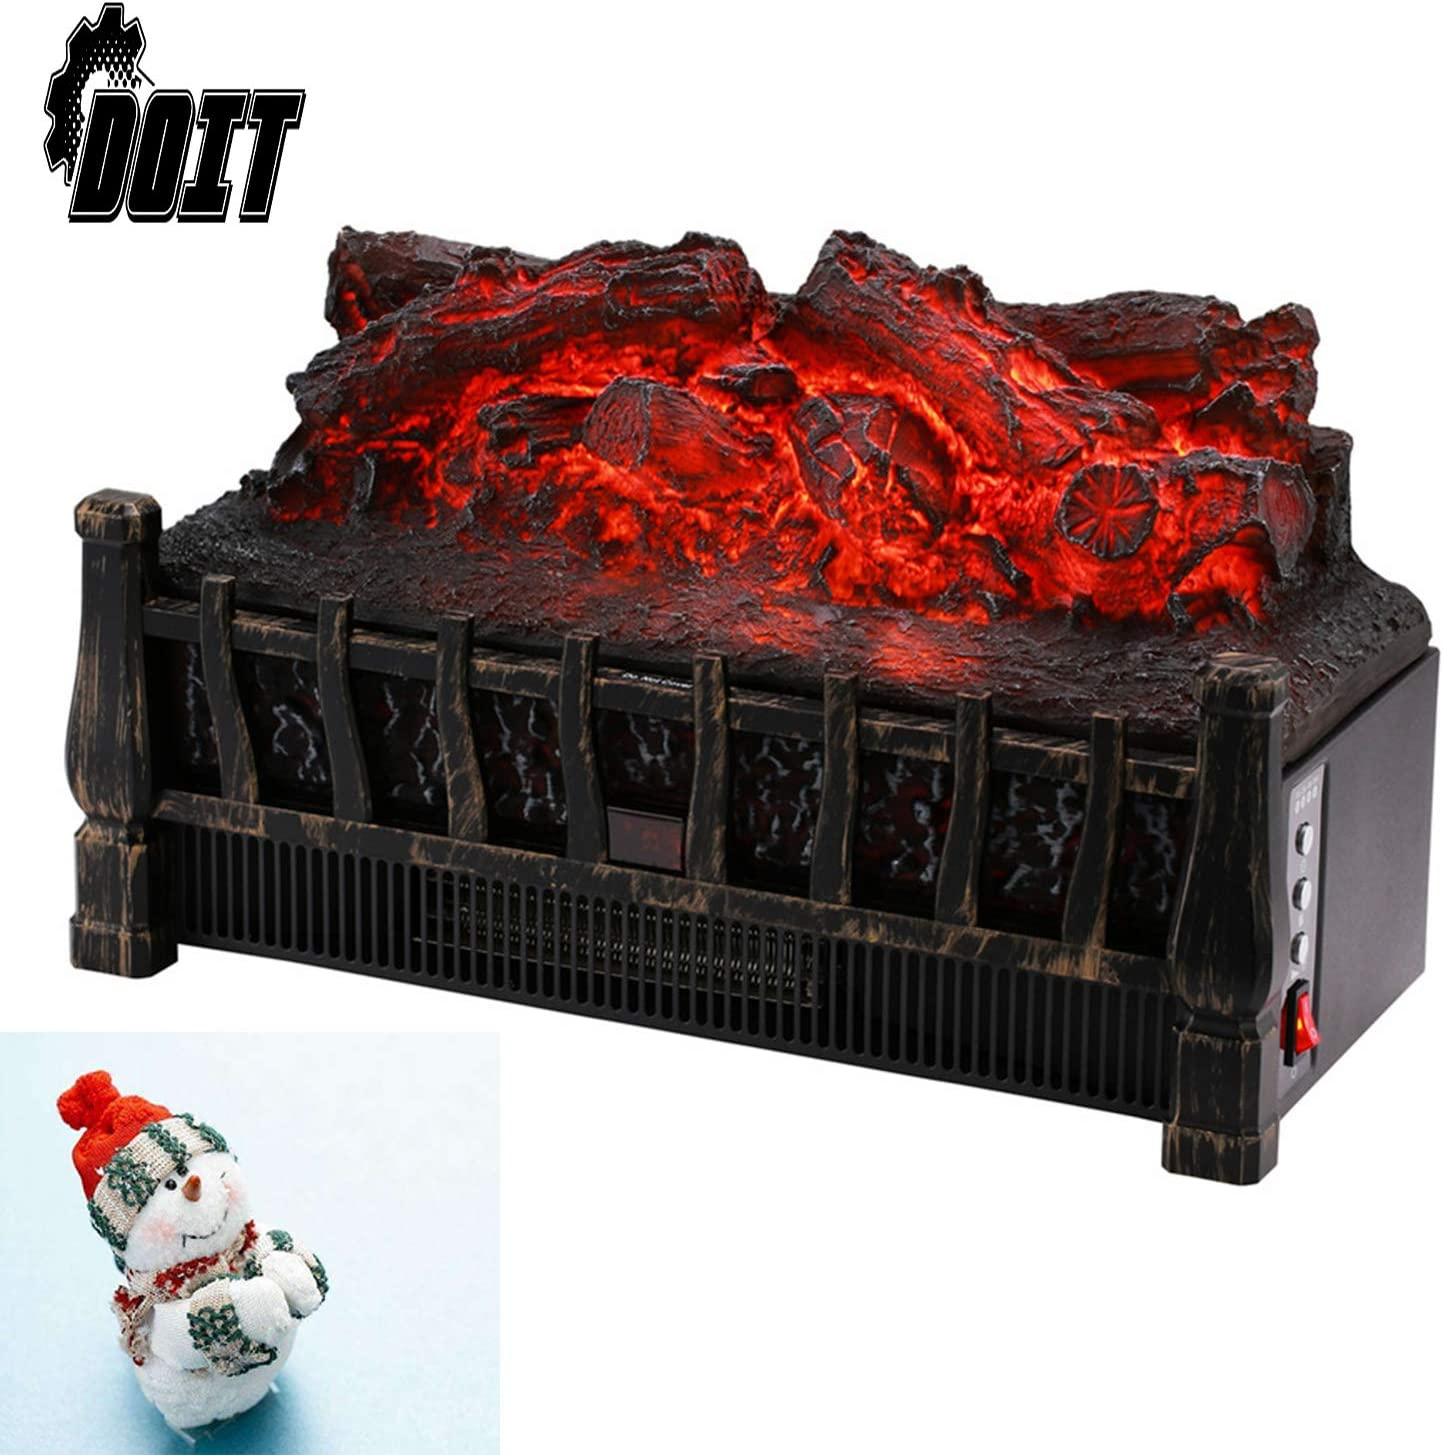 DOIT Sale special price Electric Log Set Heater Ember Bed,Fireplac with NEW before selling ☆ Realistic